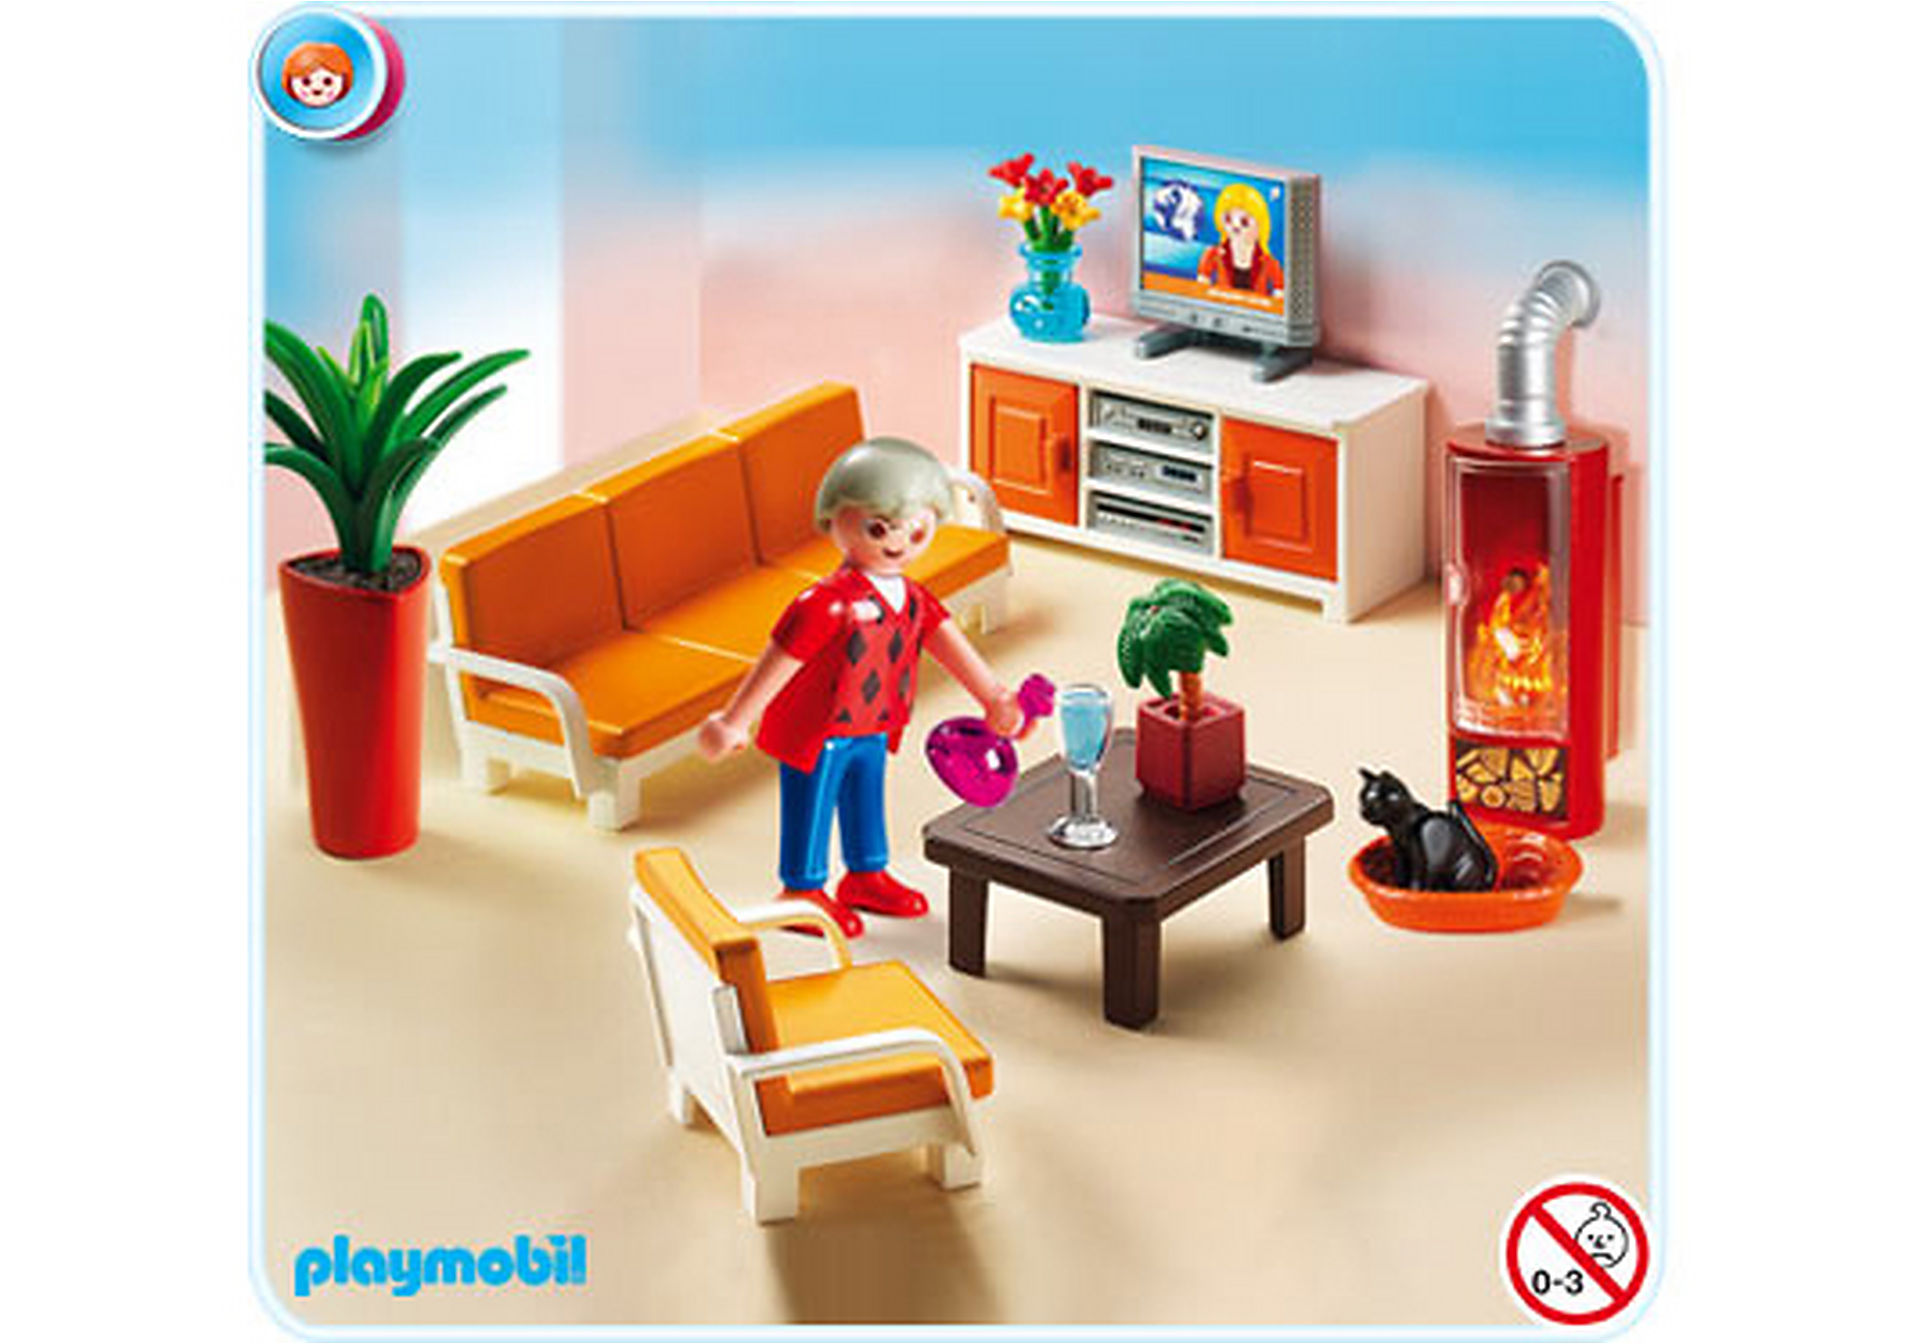 http://media.playmobil.com/i/playmobil/5332-A_product_detail/Behagliches Wohnzimmer